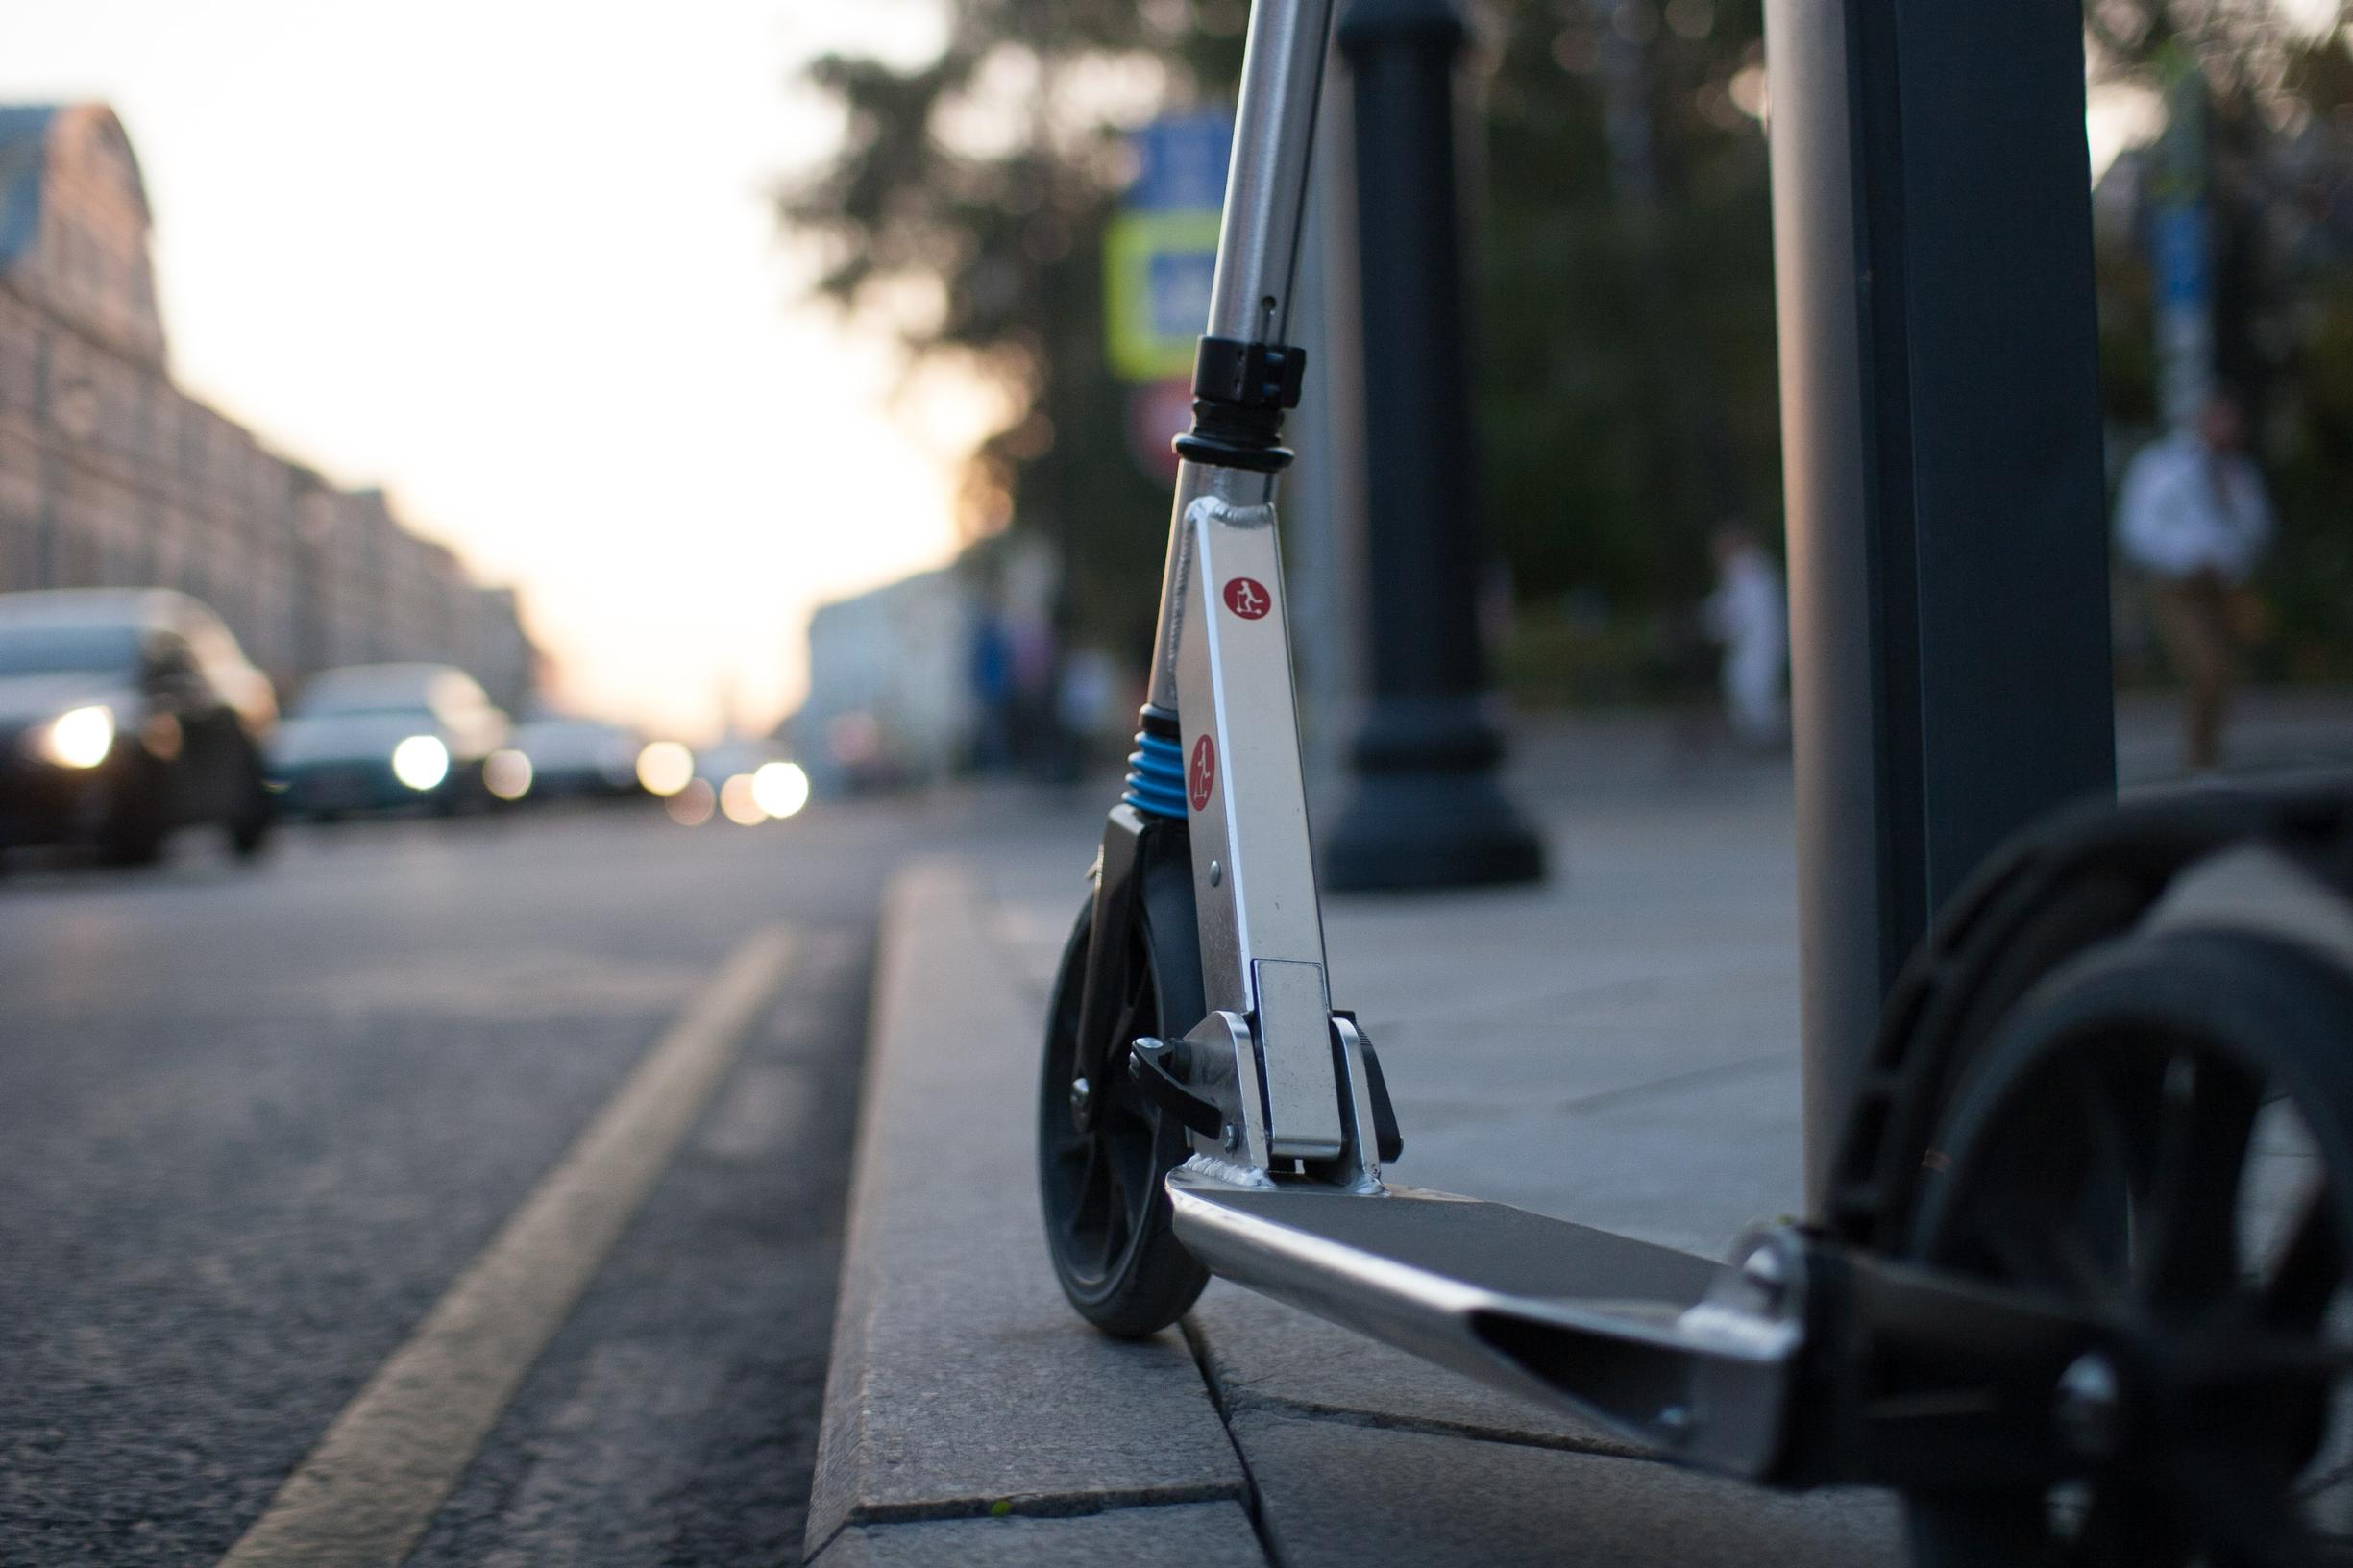 The committee calls for robust enforcement measures to eliminate pavement use of e-scooters (Unsplash)